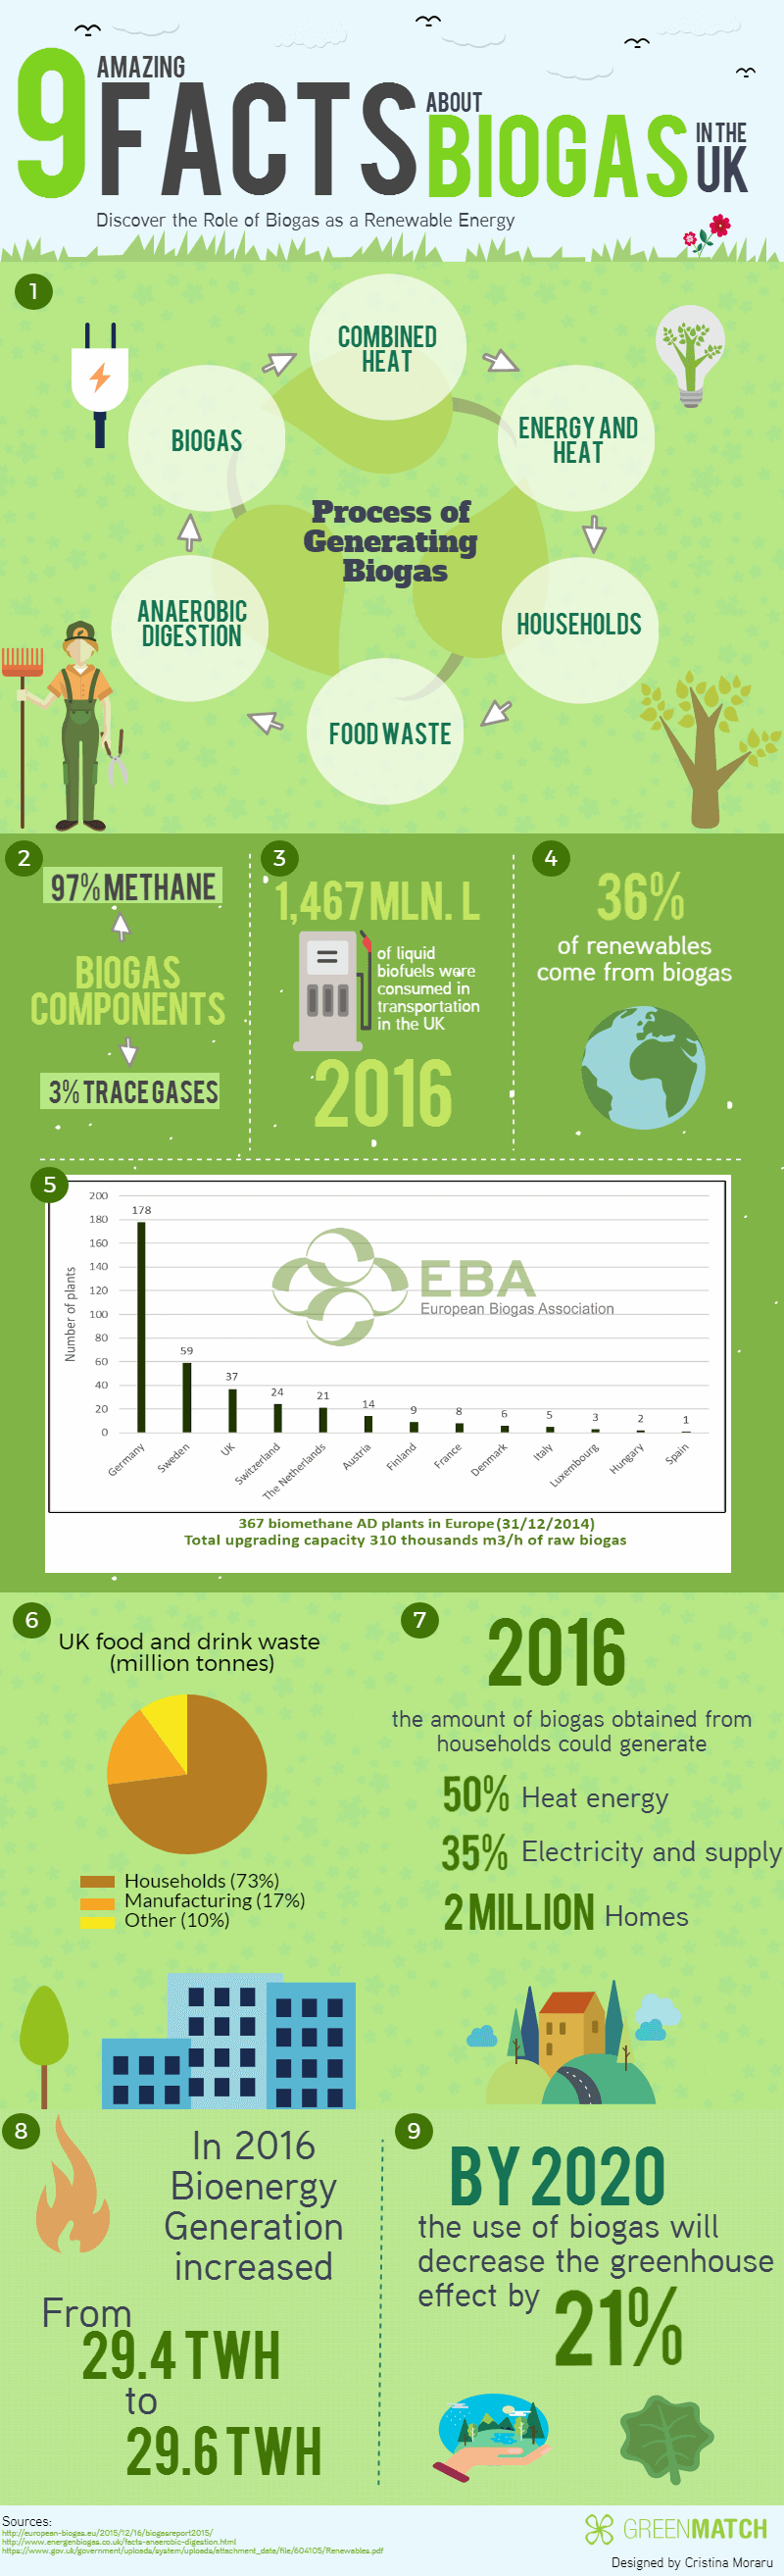 Facts About Biogas